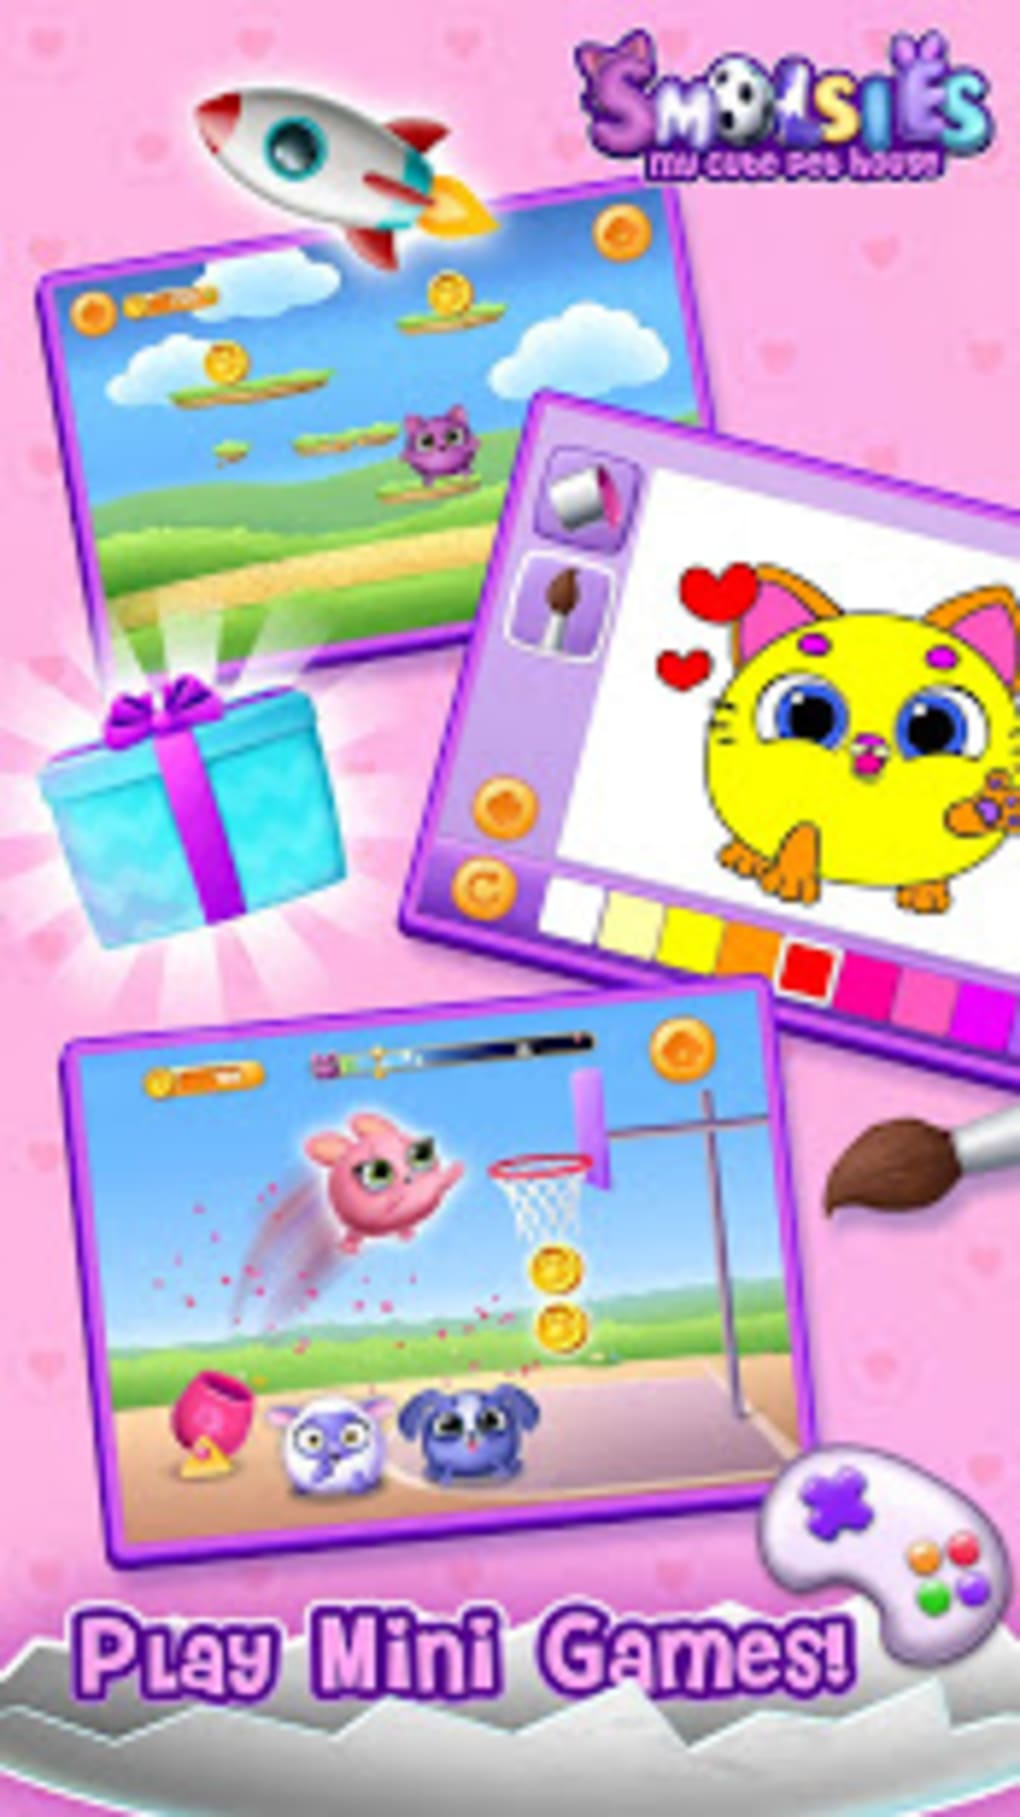 Smolsies - My Cute Pet House for Android - Download